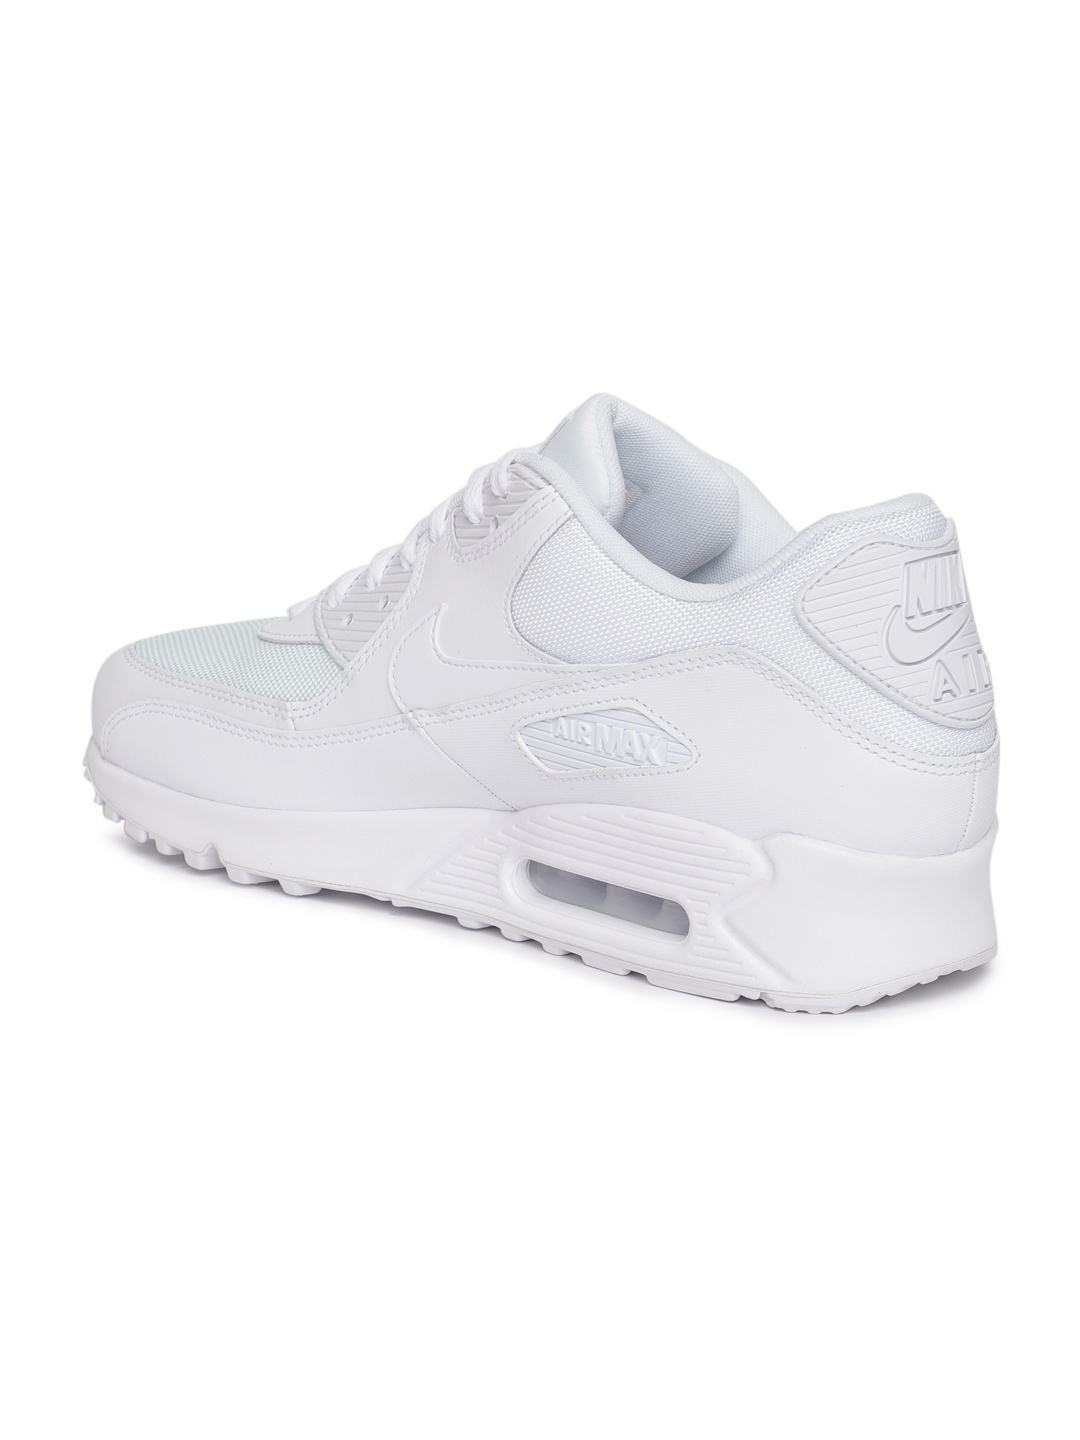 b7cb769b2d Buy Nike Men White Air Max 90 Essential Leather Casual Shoes ...